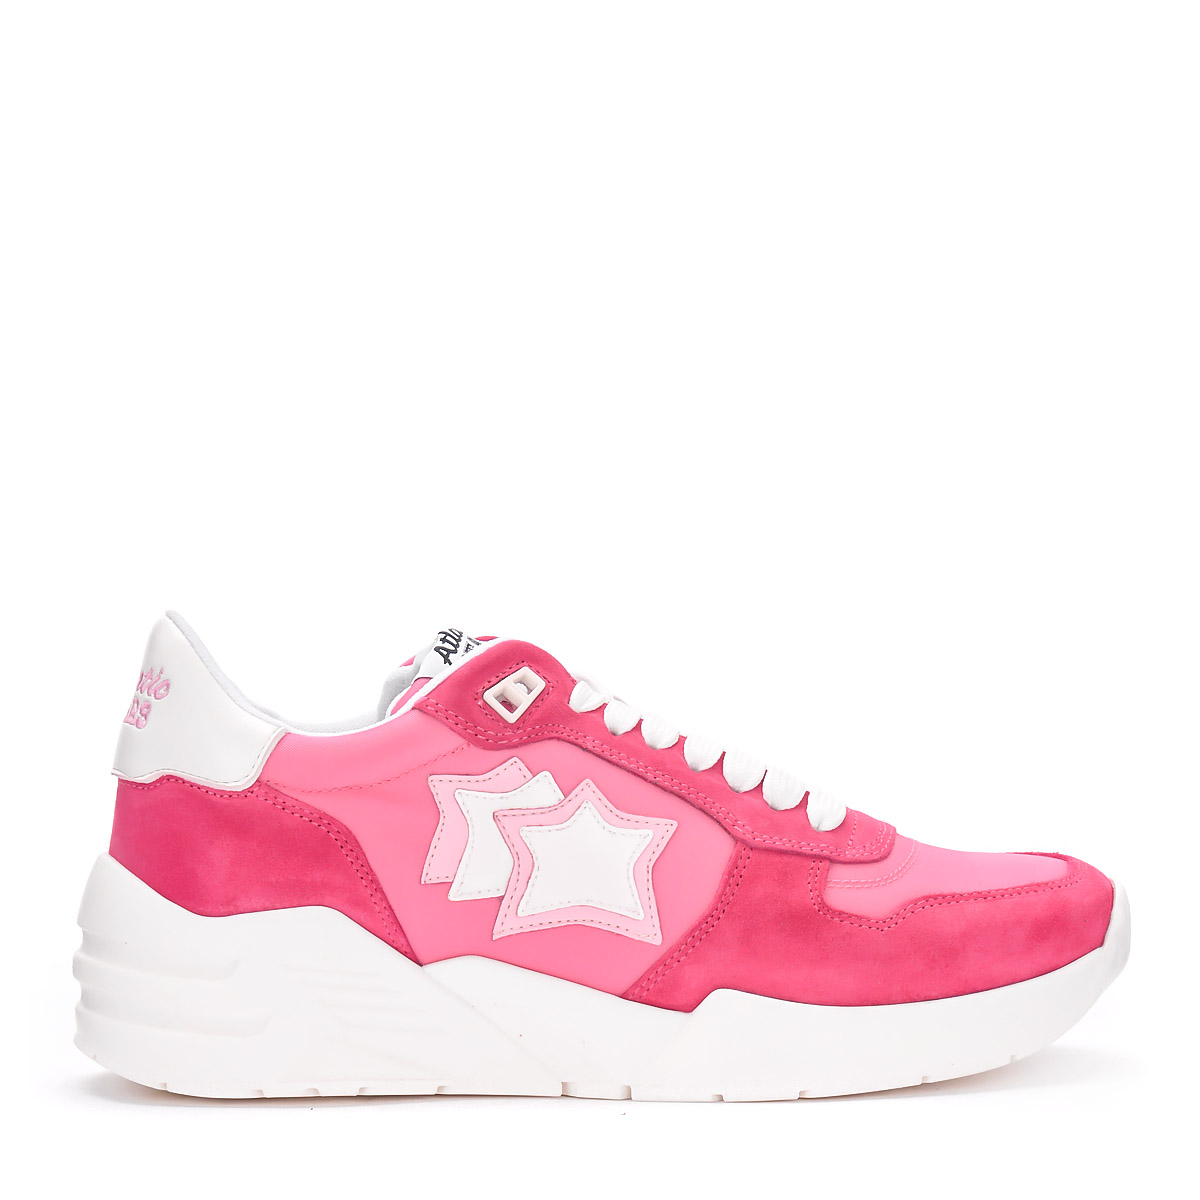 Sneaker Atlantic Stars Venus in Nubuck and pink fabric